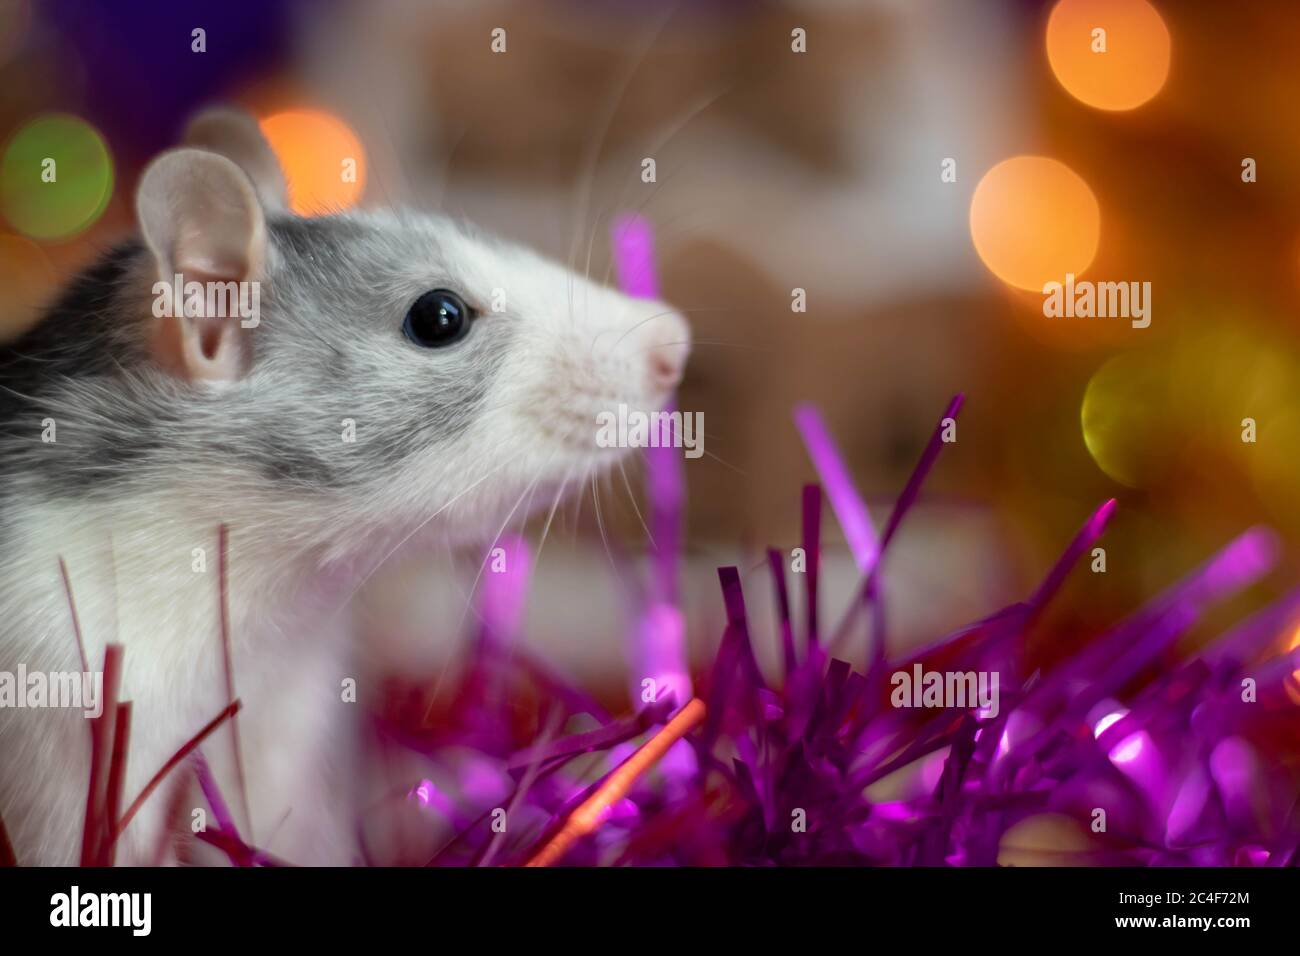 A close-up of a rat peeking out of its hiding place, a symbol of the 2020 Concept.Chinese horoscope. Stock Photo